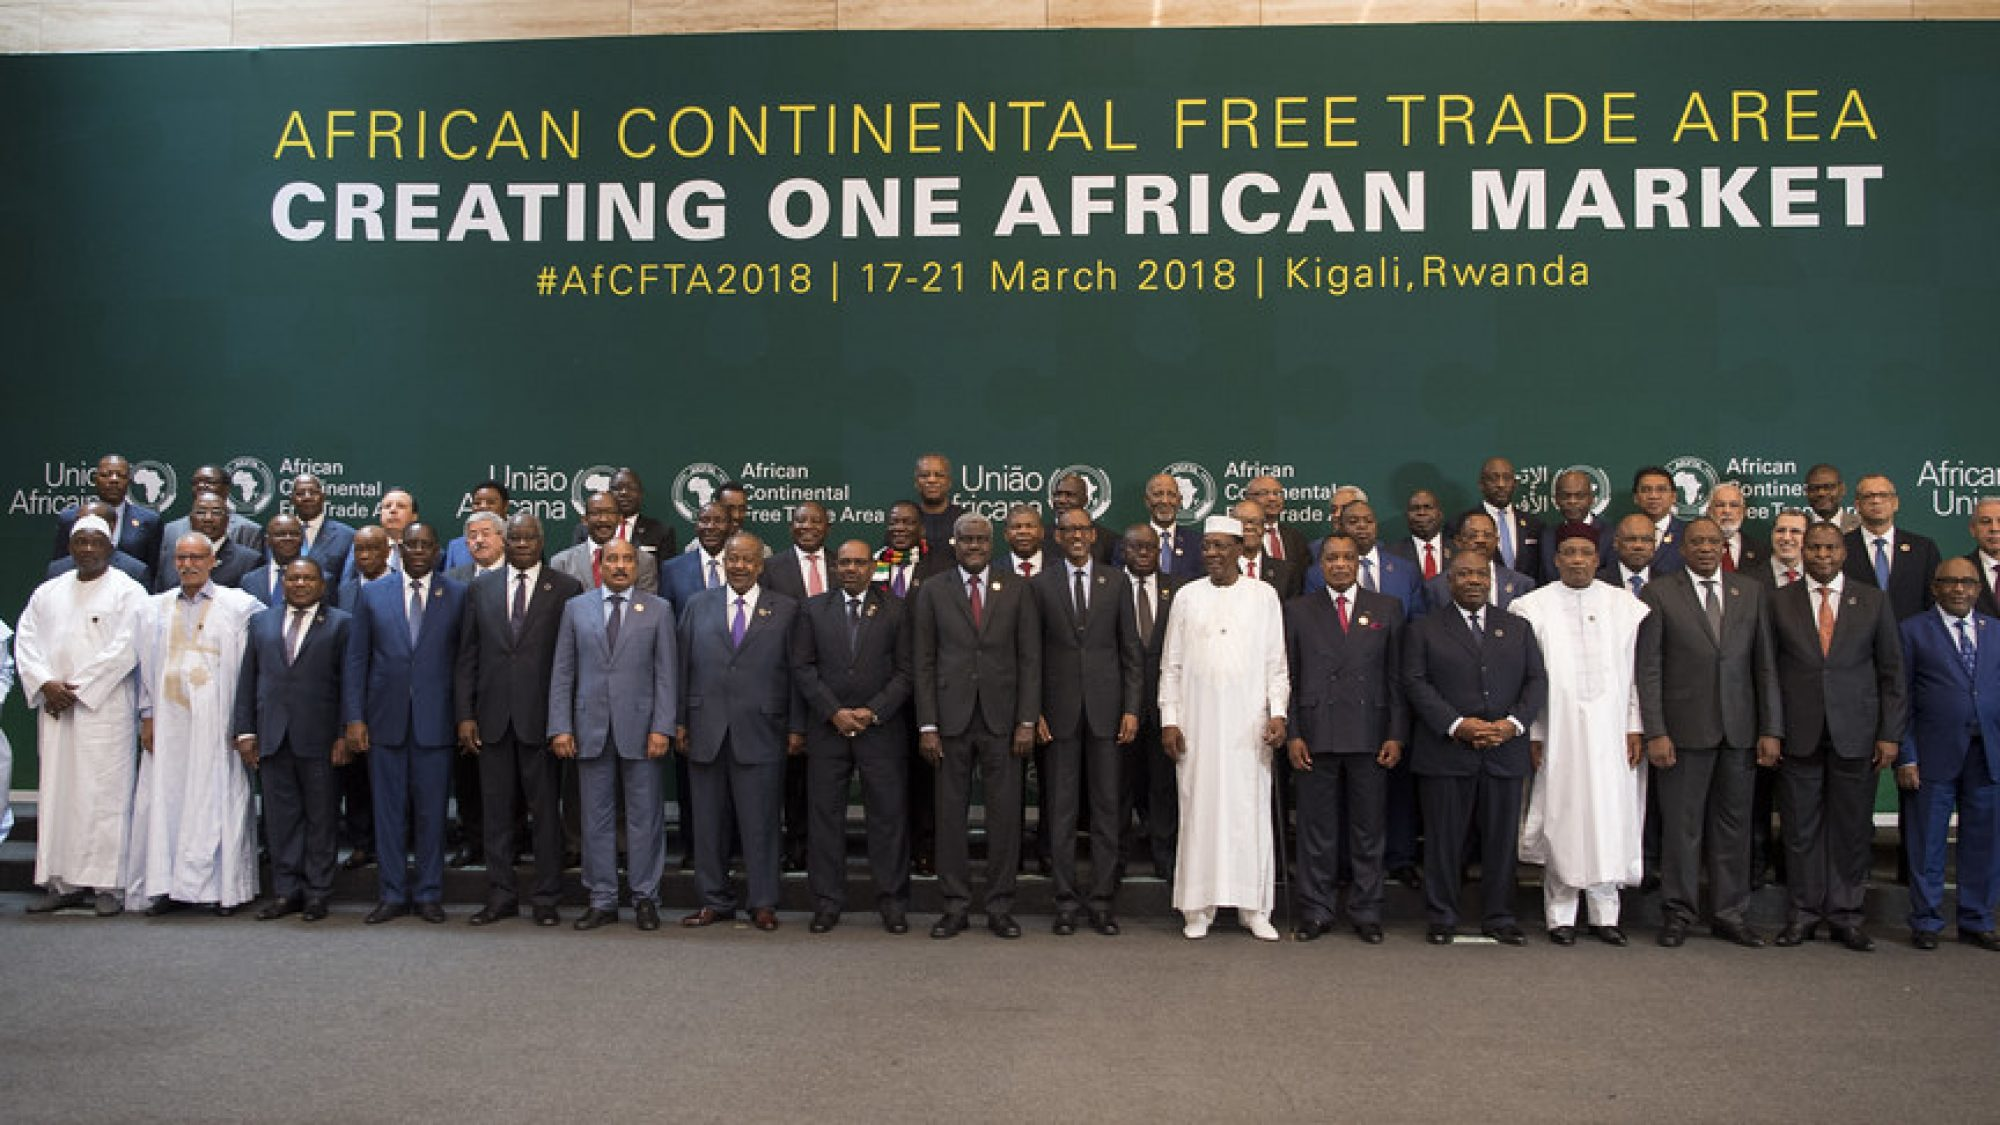 10th Extraordinary Summit of the African Union